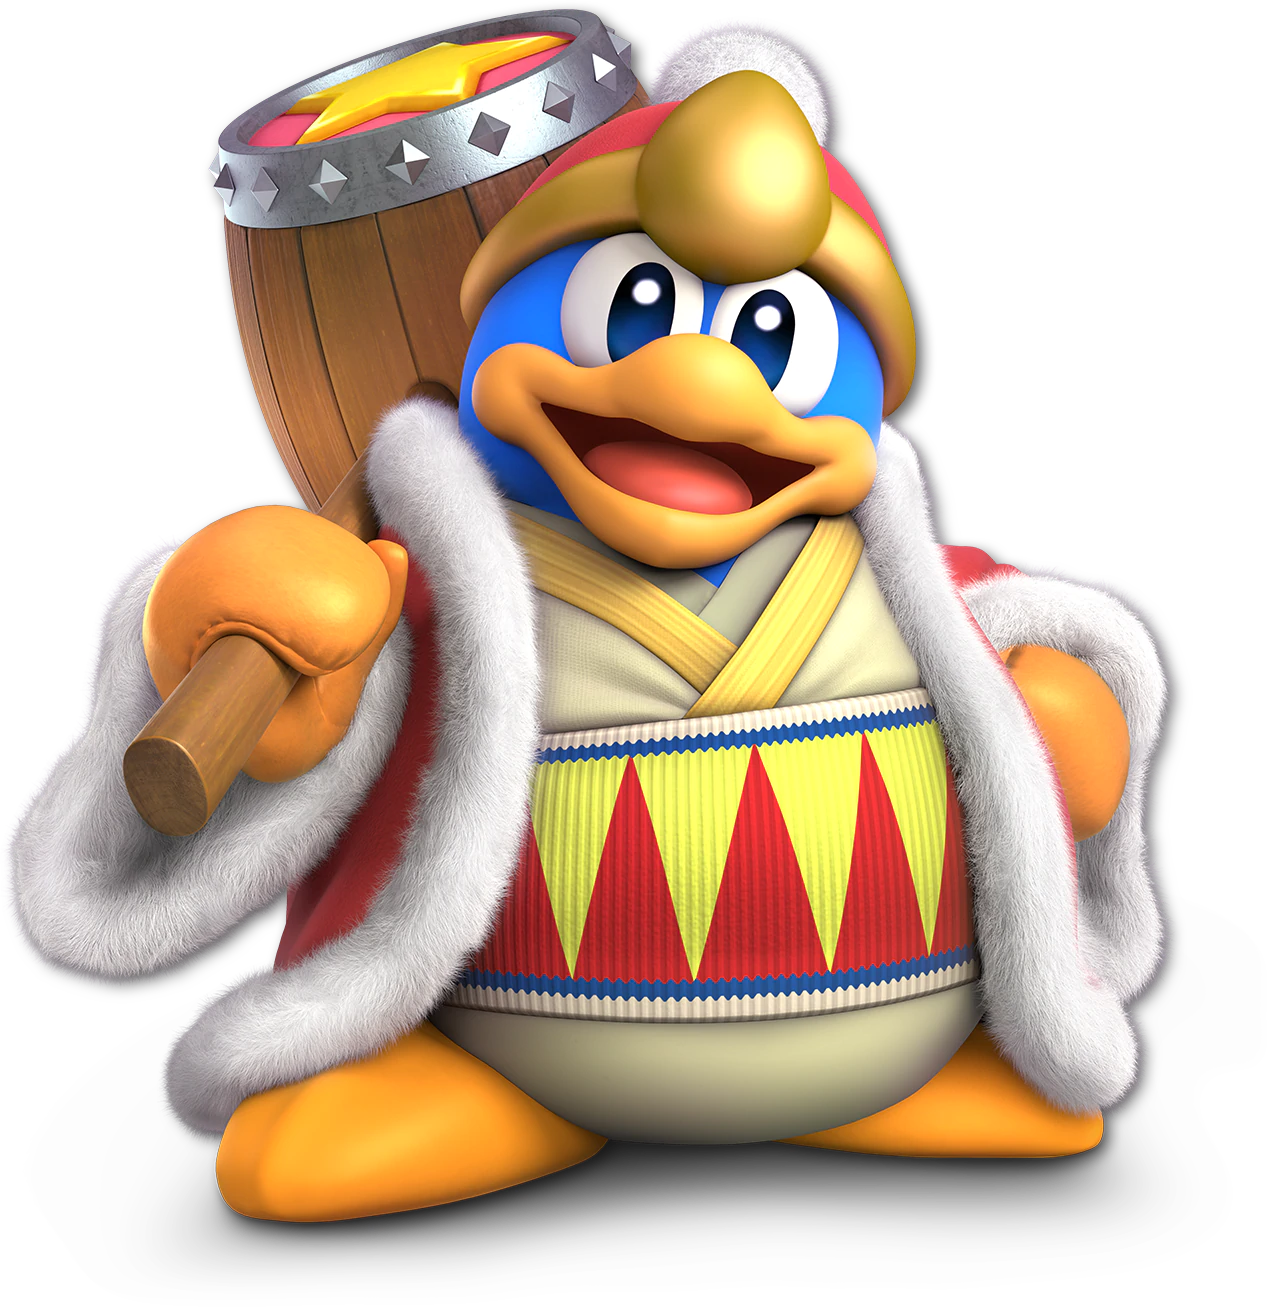 King Dedede | Kirby Wiki | FANDOM powered by Wikia